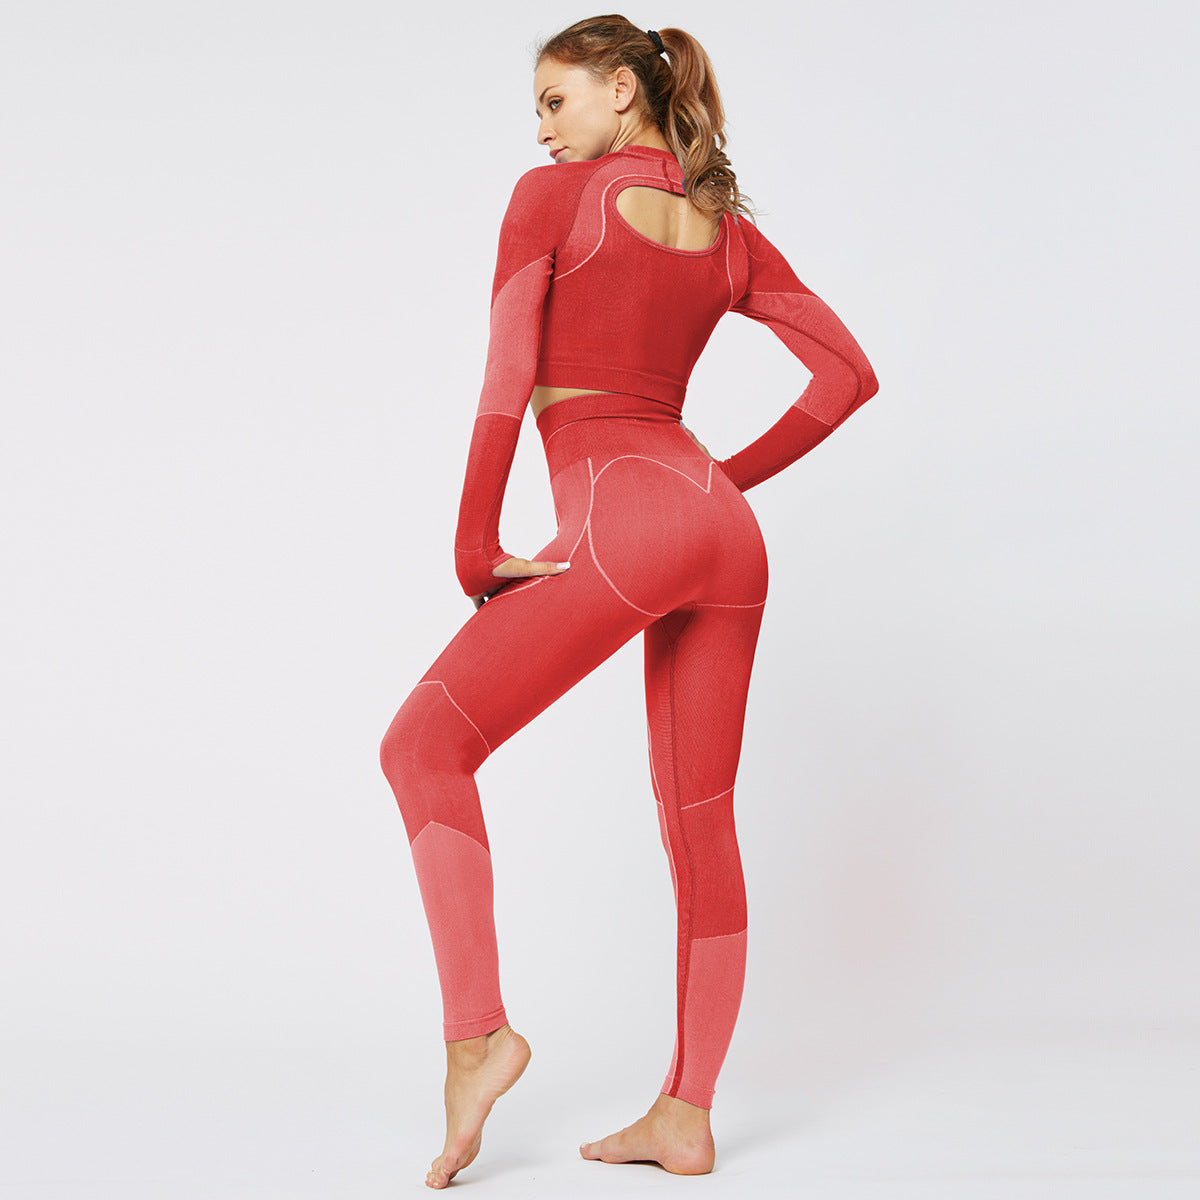 2020 Women Yoga Suit Long Sleeve Seamless Hip Lift High Waisted Leggings Activewear Sportswear YS-008